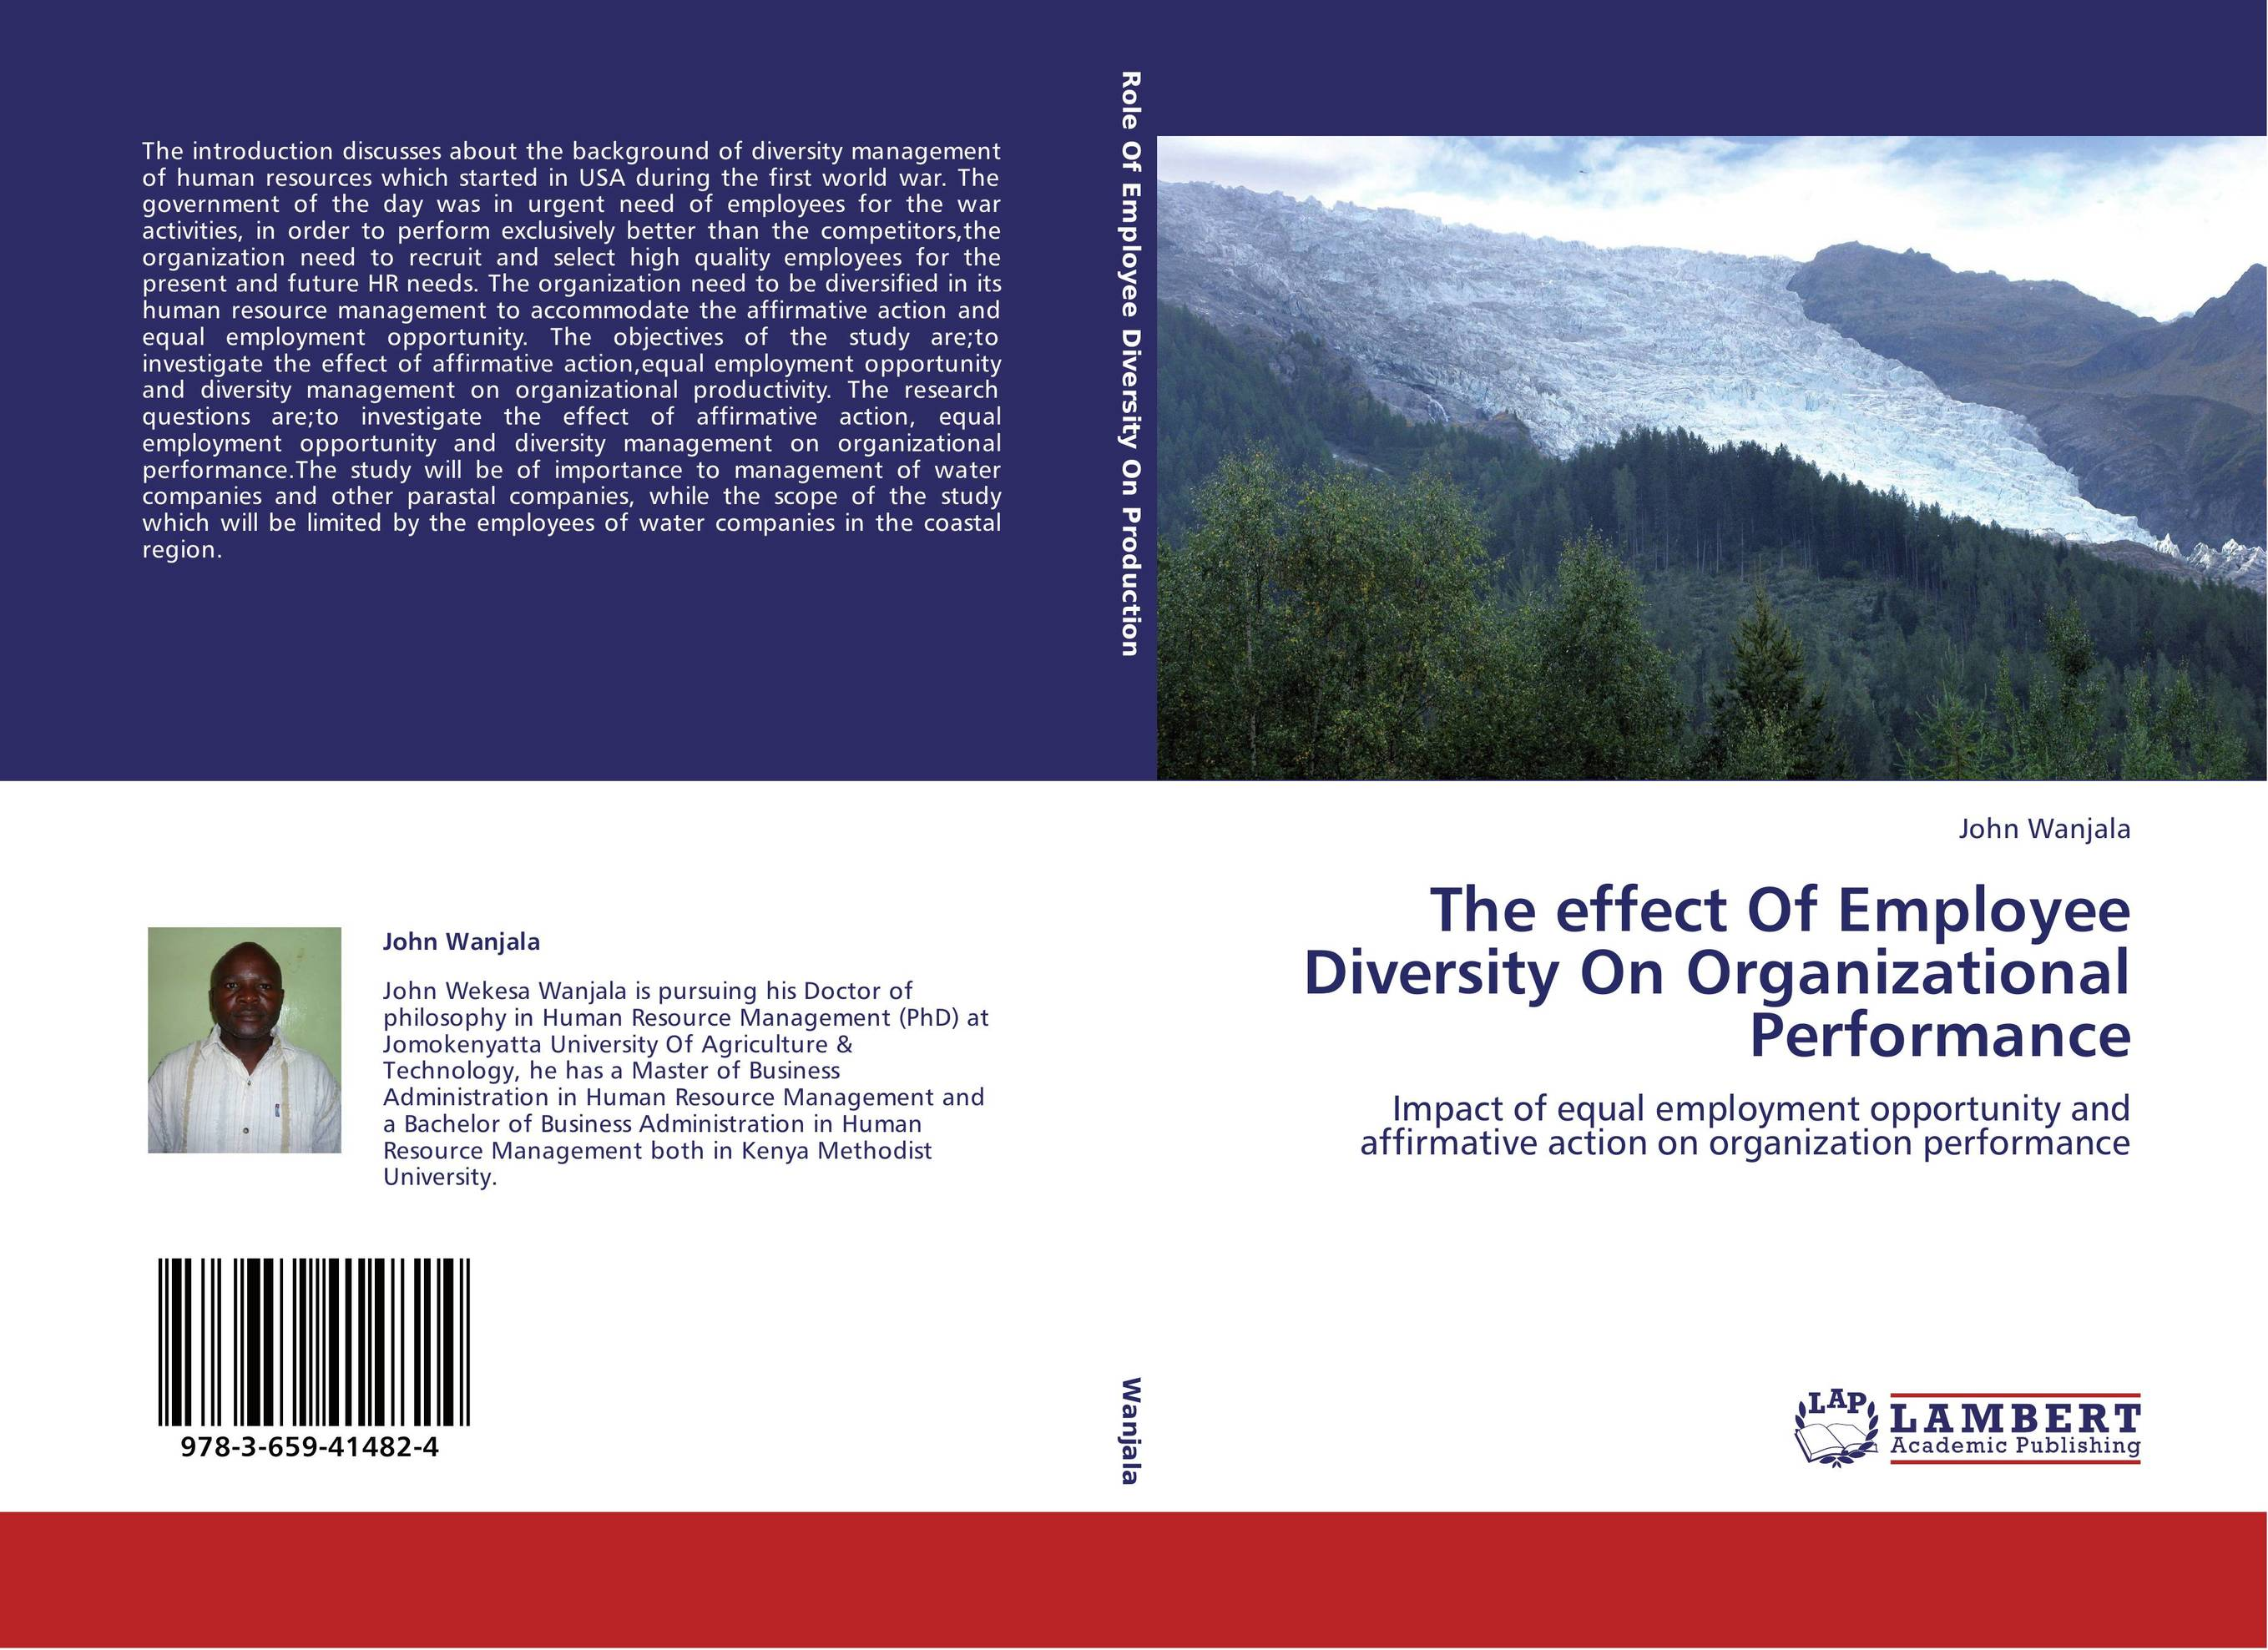 equal opportunities or managing diversity in Equal opportunities focuses on groups where managing diversity focuses on the individual (6) equal opportunities deals with the different needs of different groups as apposed to the totally integrated approach of managing diversity (7) recruitment is the focus of management activity.